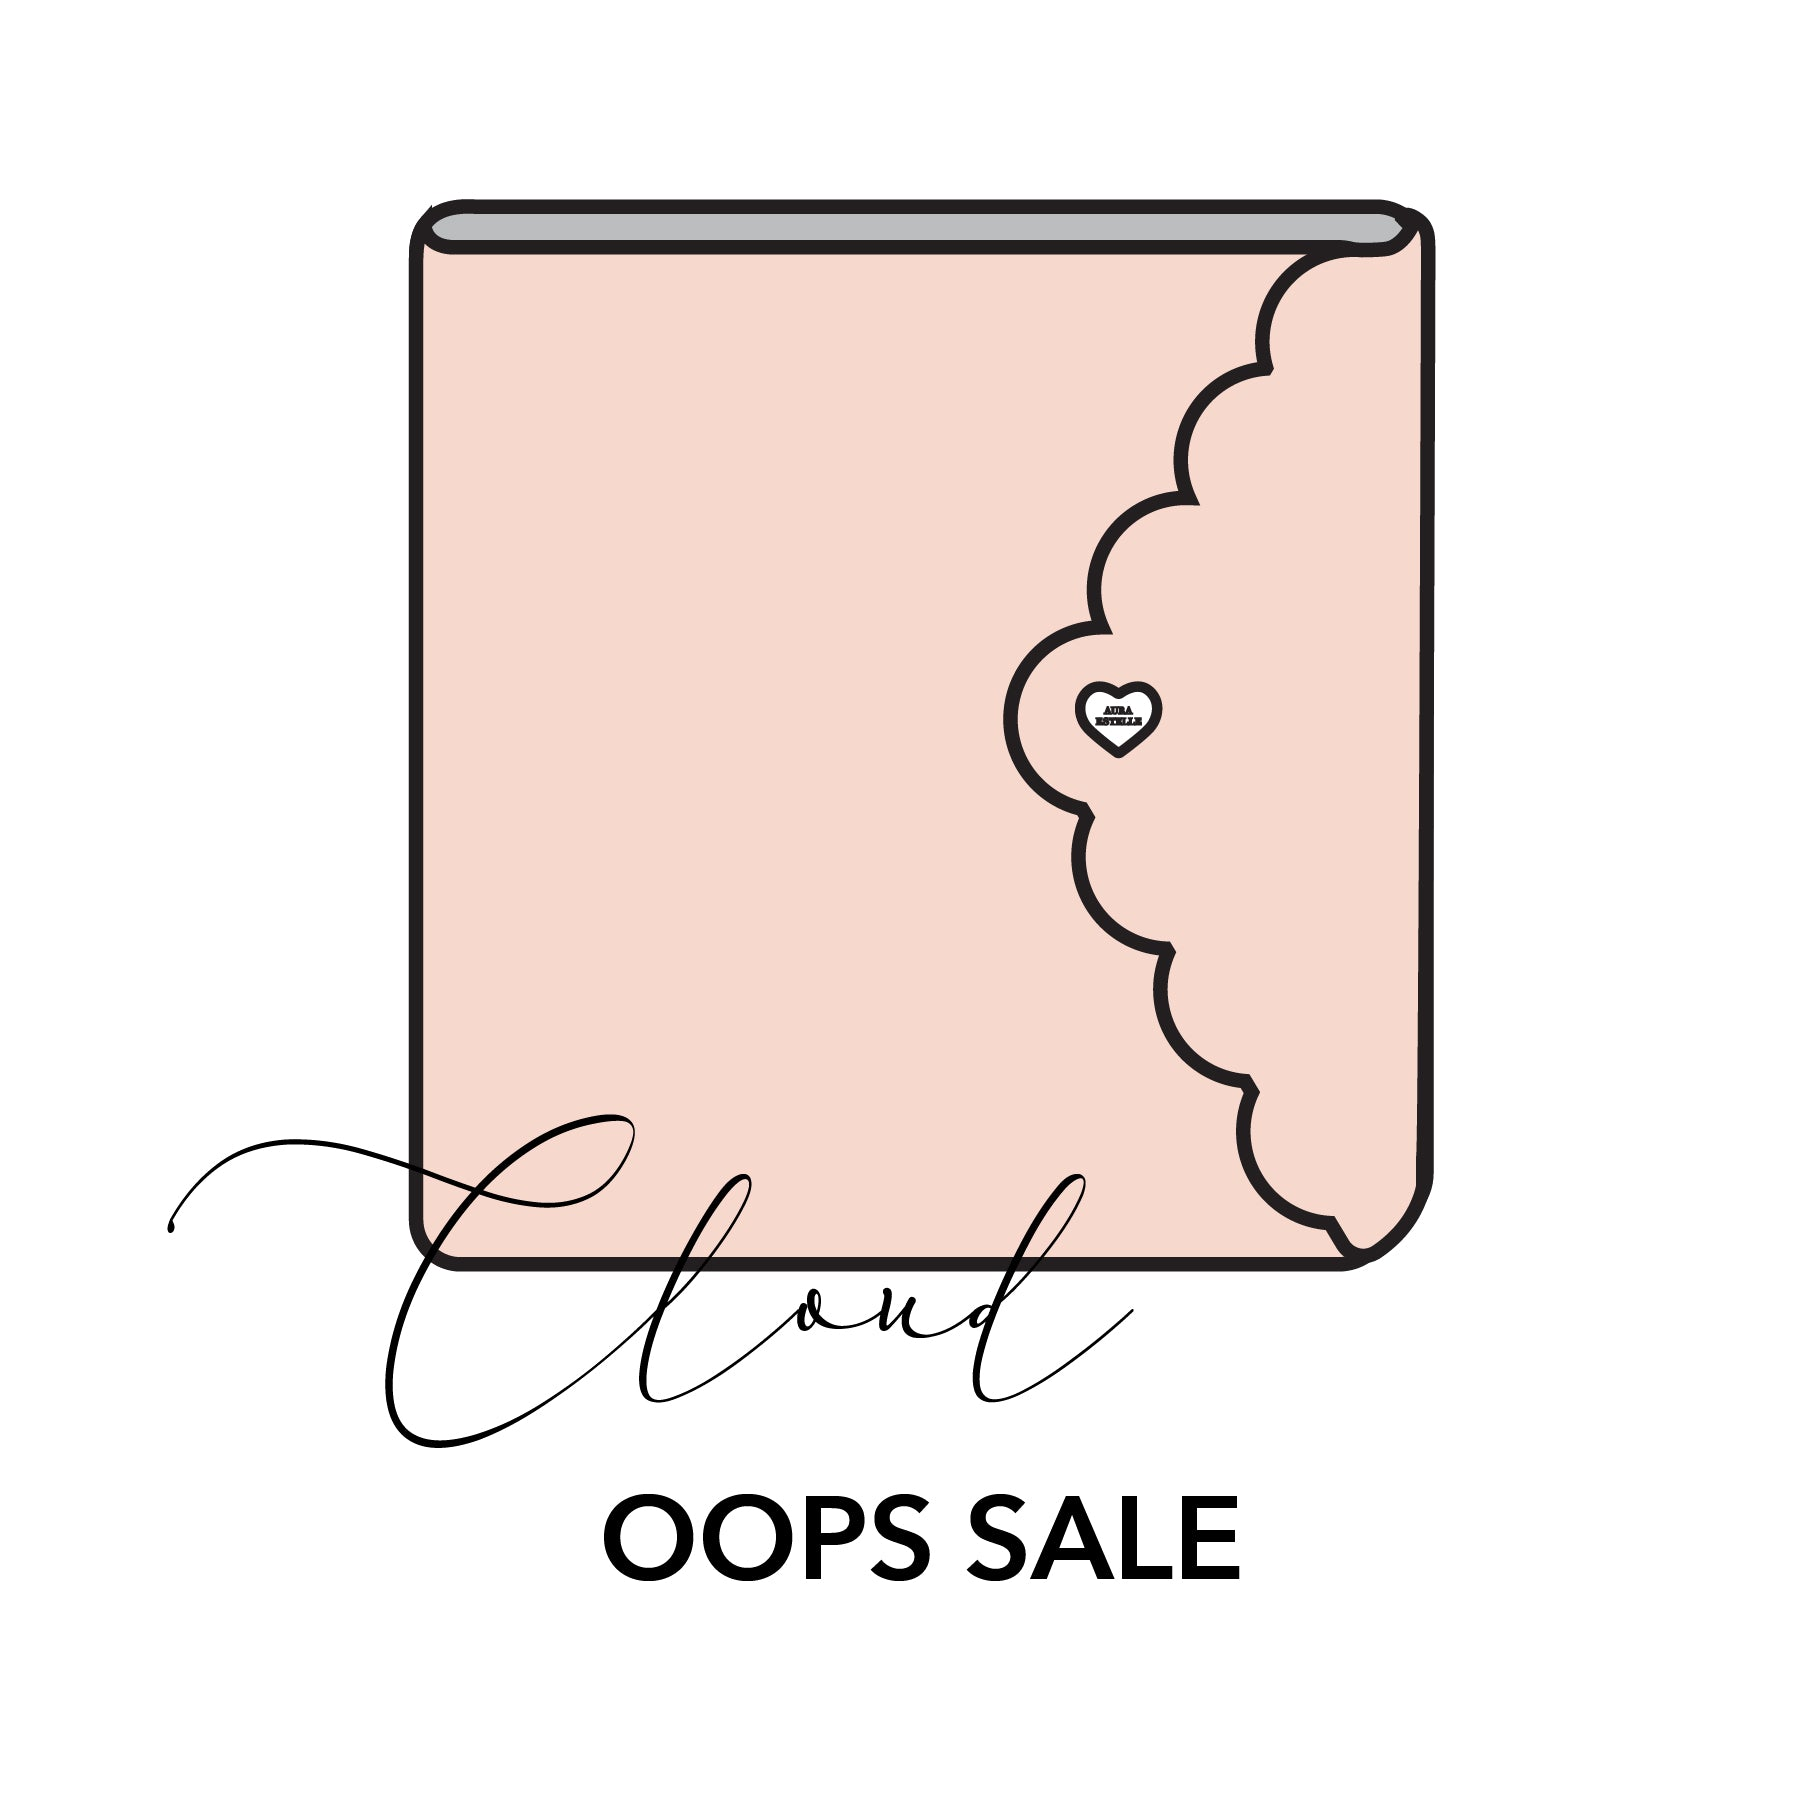 OOPS SALE | CLOUD PLANNER A5 WIDE